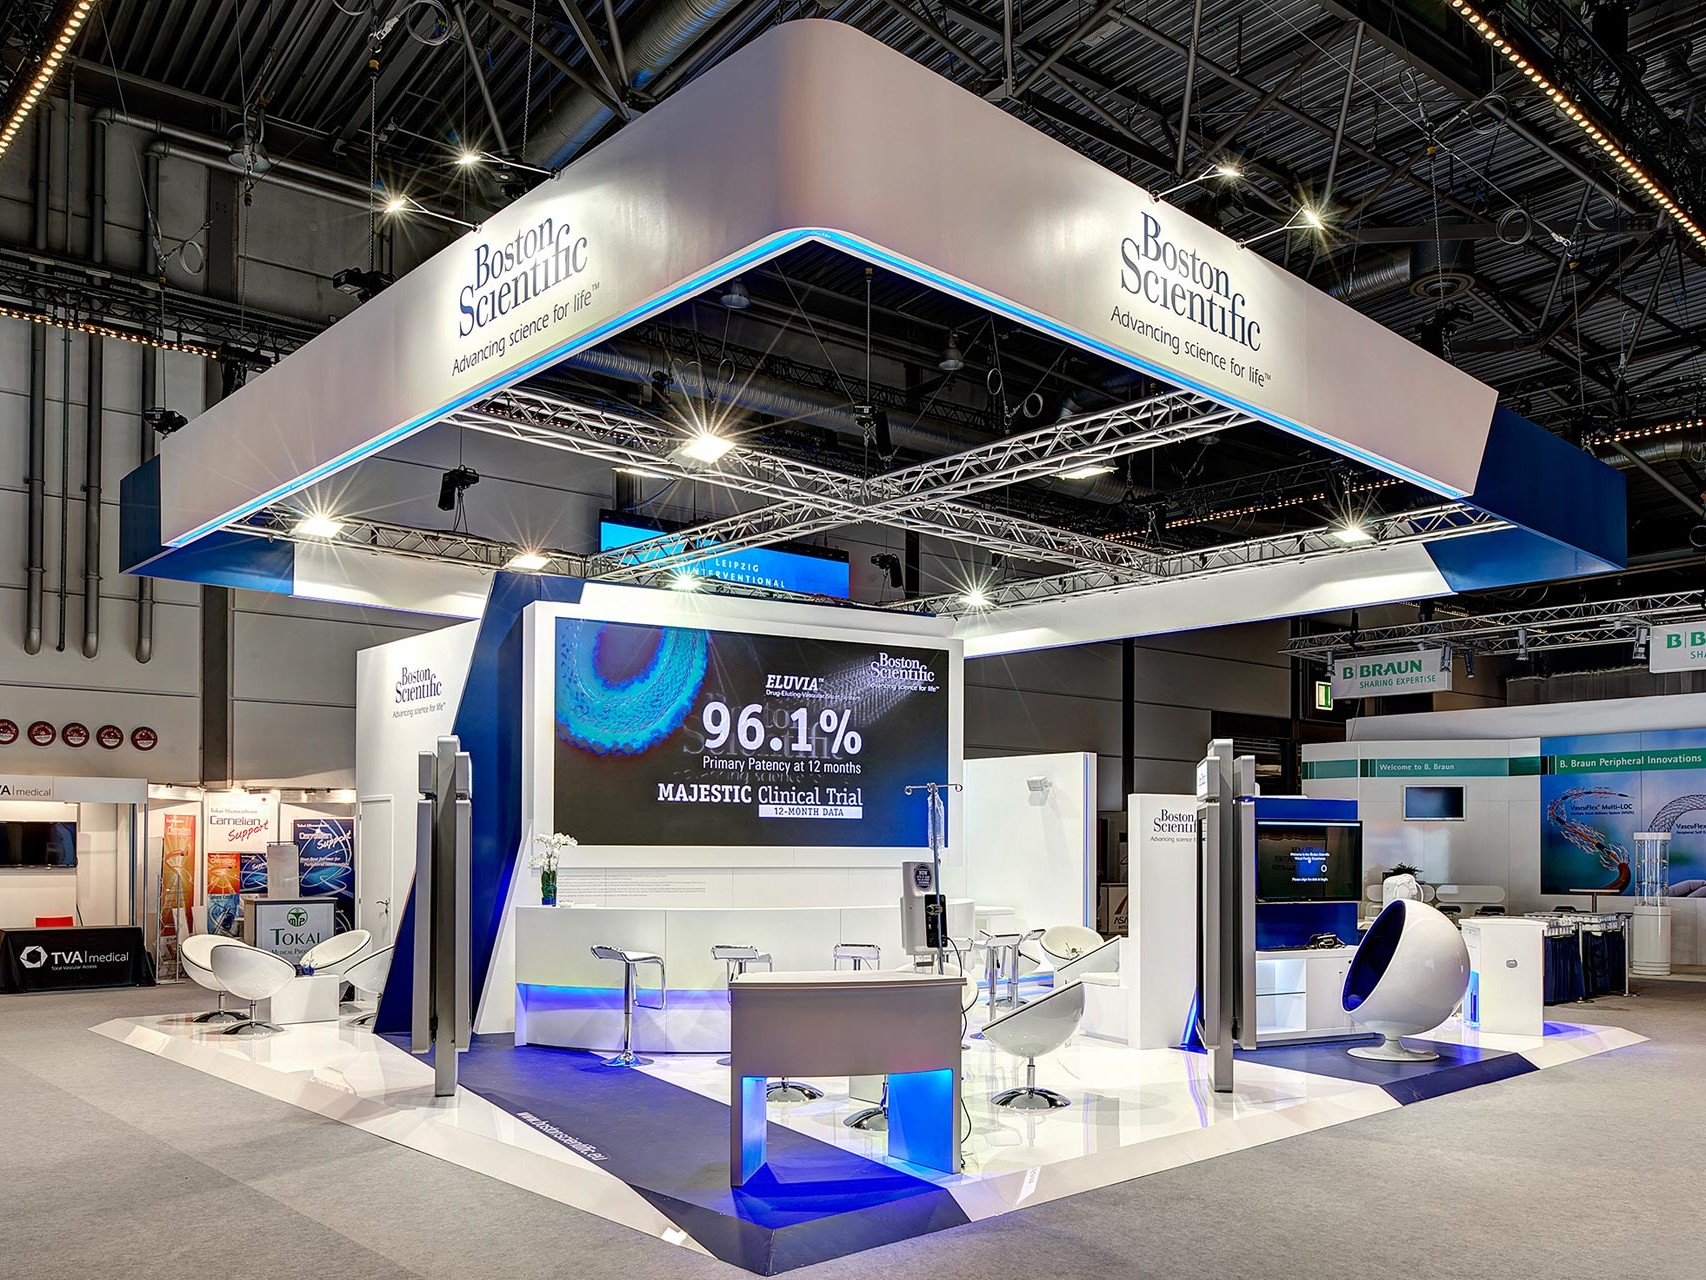 Exhibition Stand Portfolio : Boston scientific exhibition stands portfolio pro expo